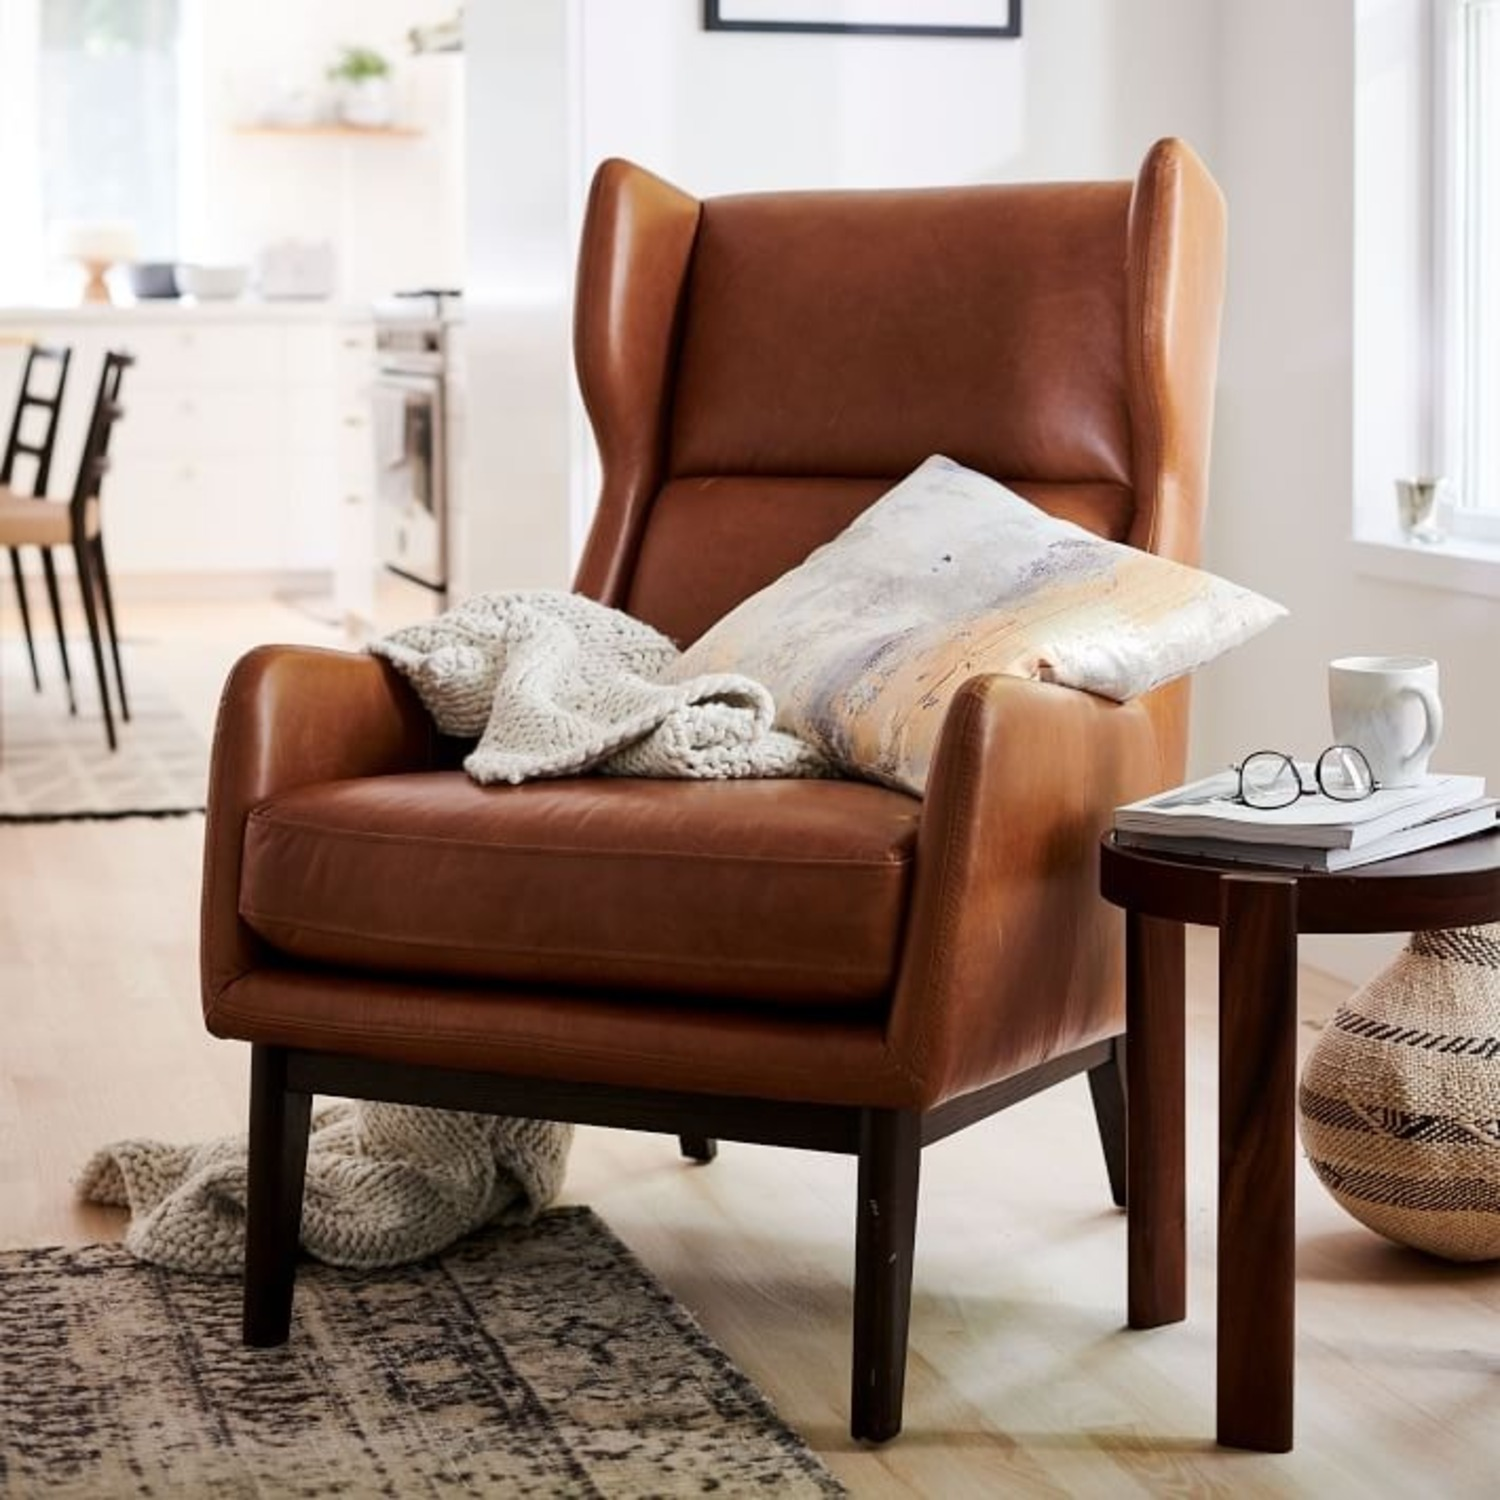 West Elm Ryder Leather Chair - image-3